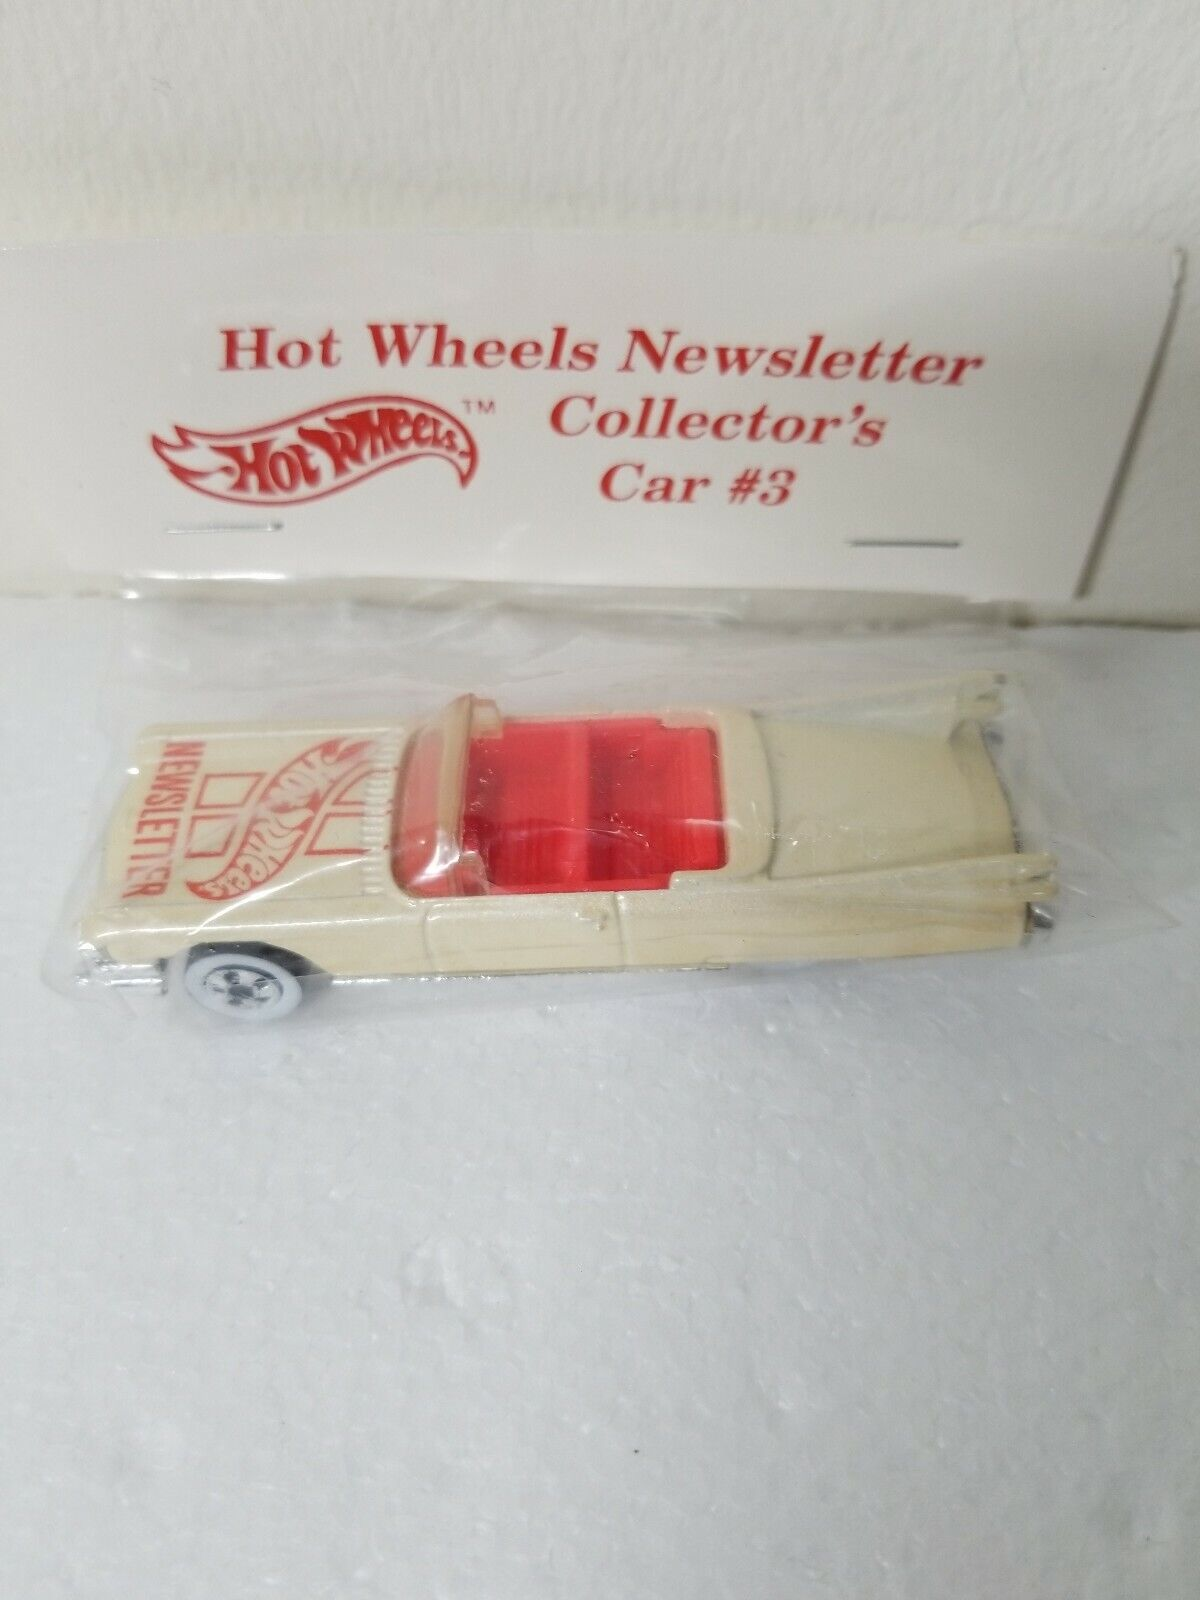 Hot Wheels Newsletter Collector's Voitures